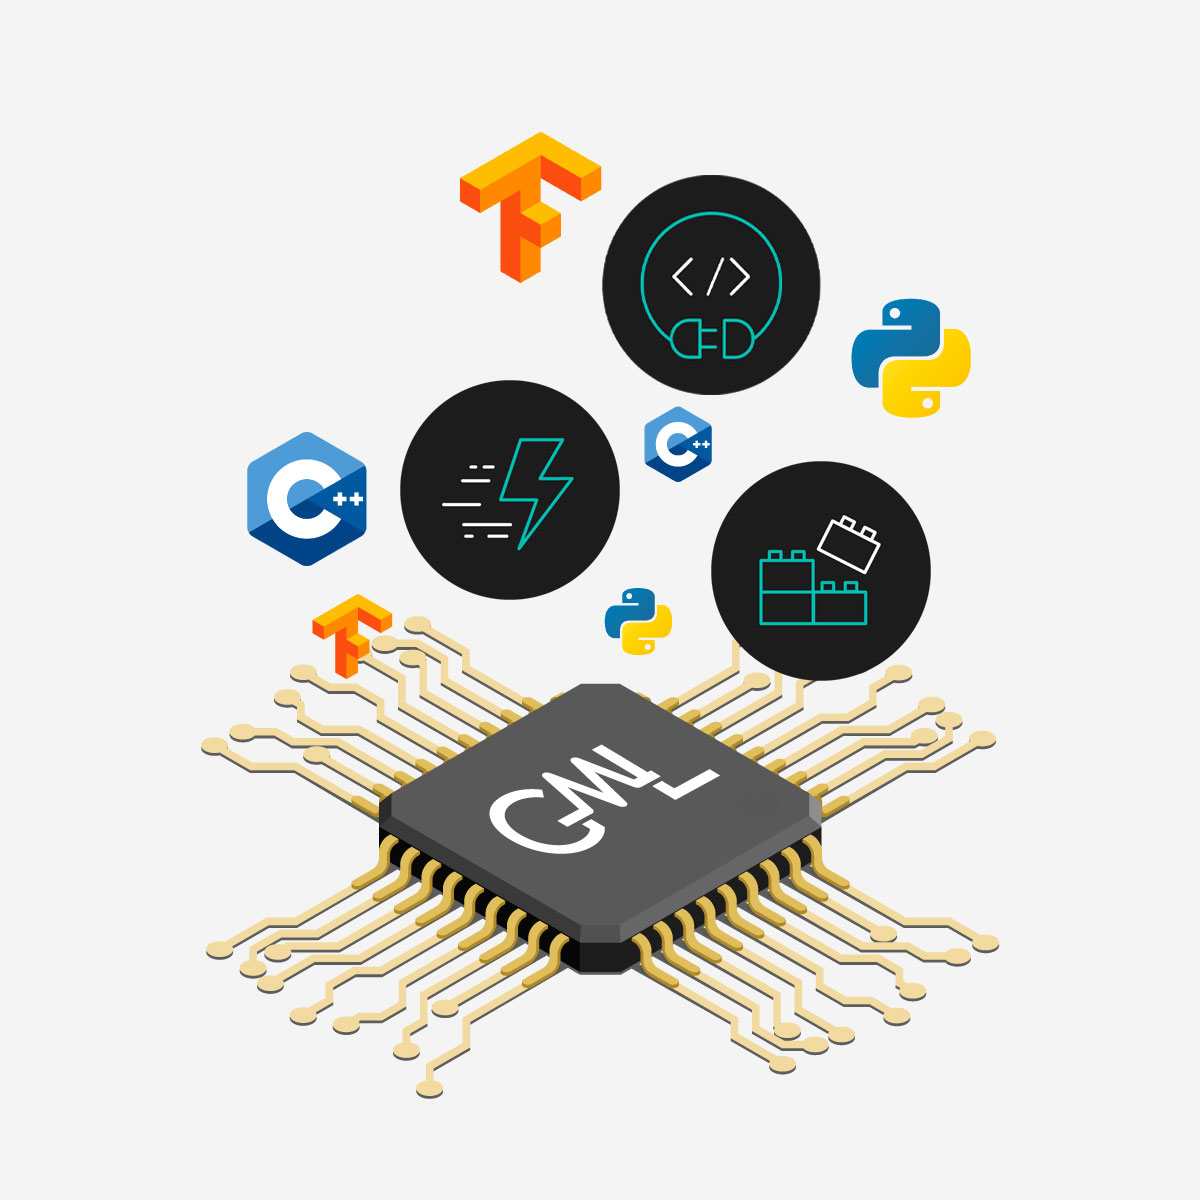 grai matter labs chip with icons floating around it